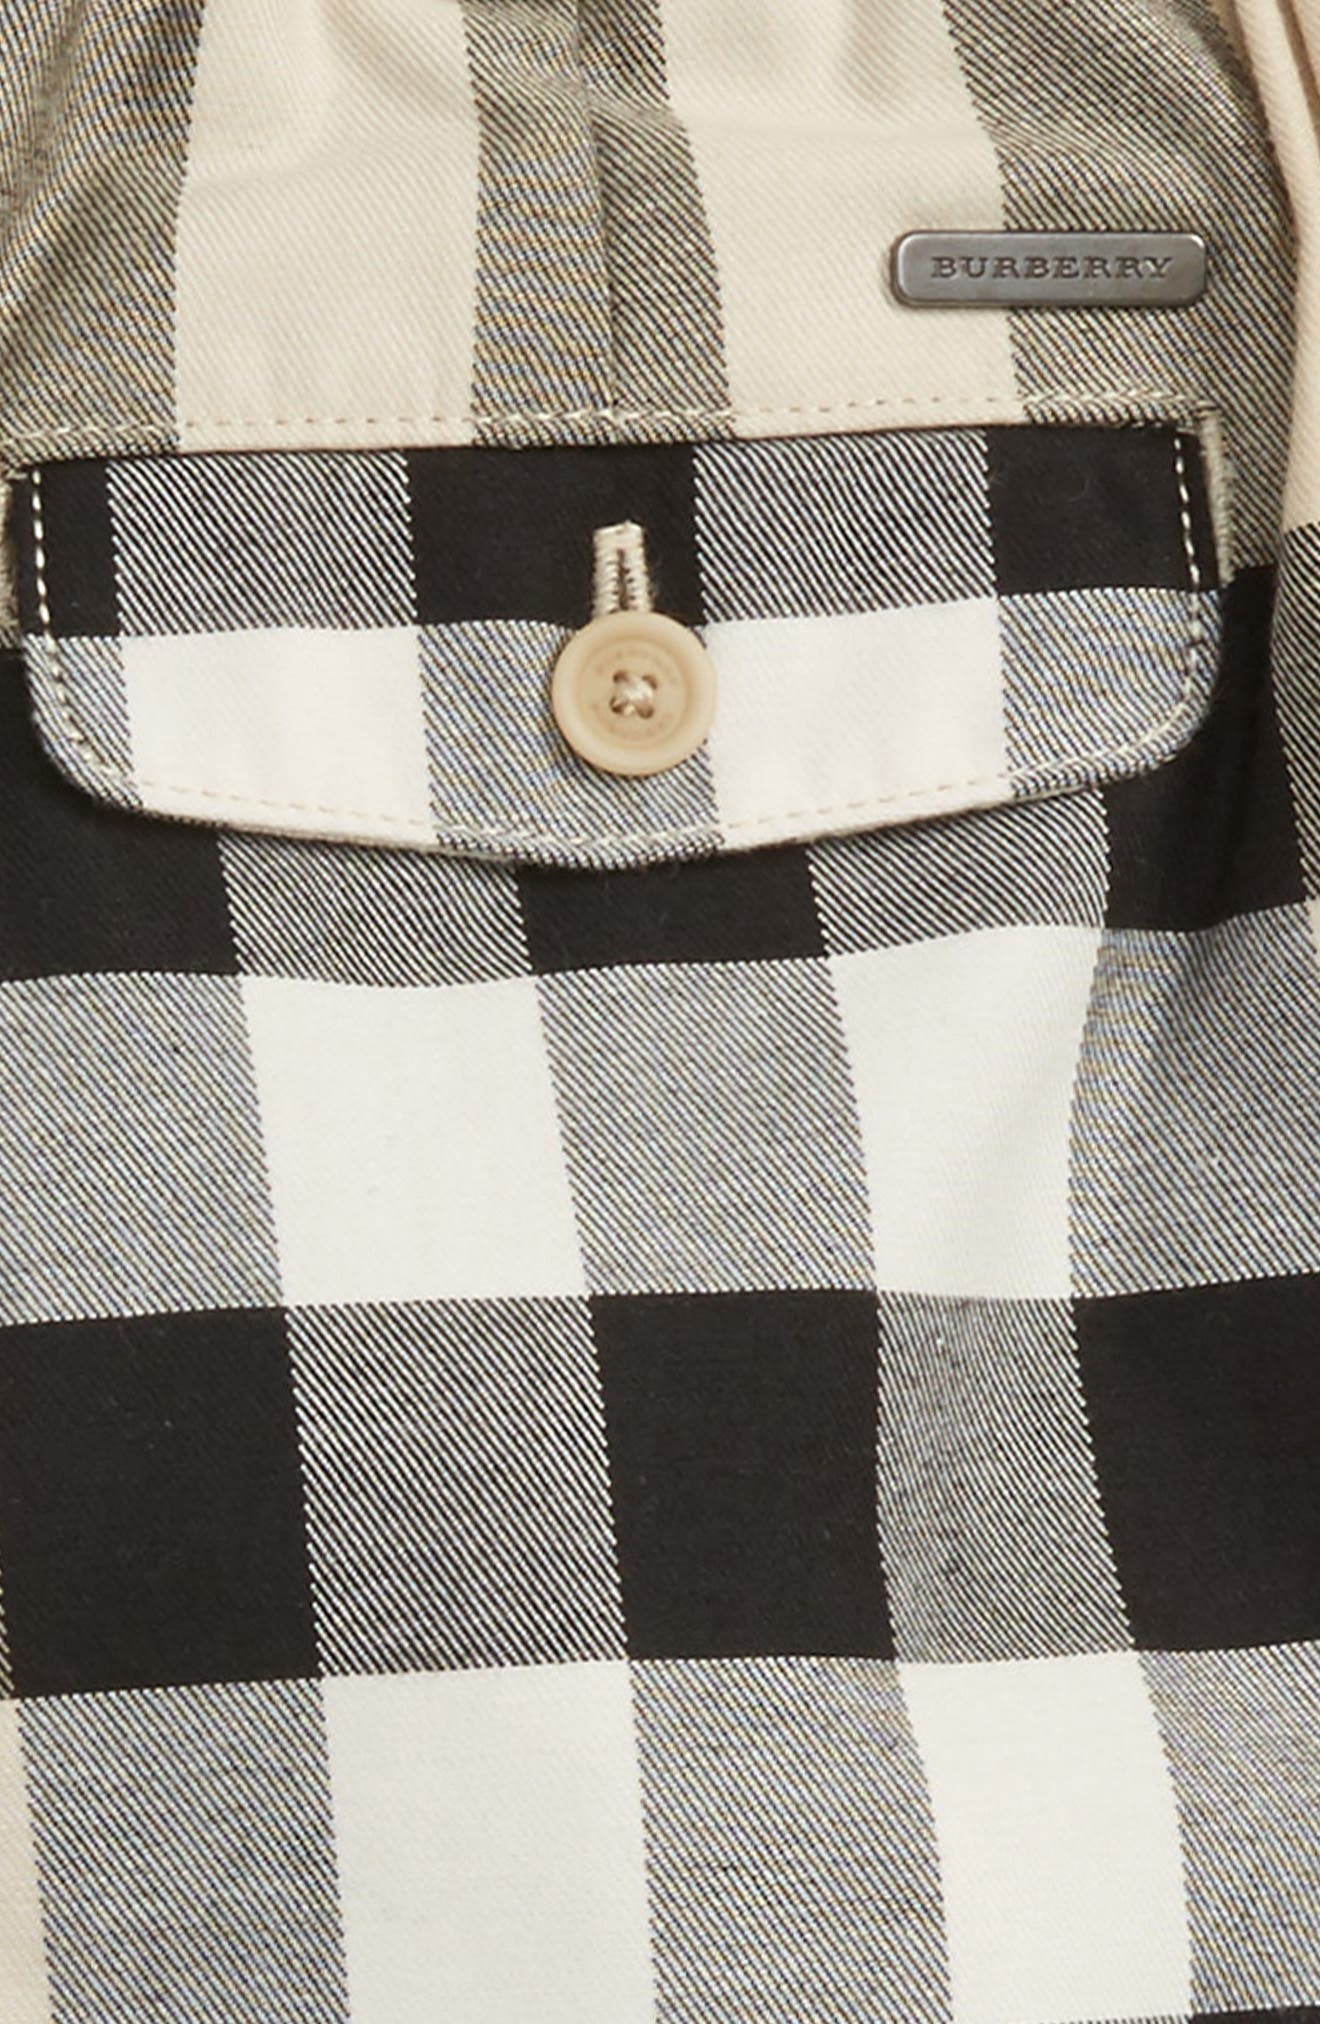 Alternate Image 3  - Burberry Sean Check Print Shorts (Toddler Boys)